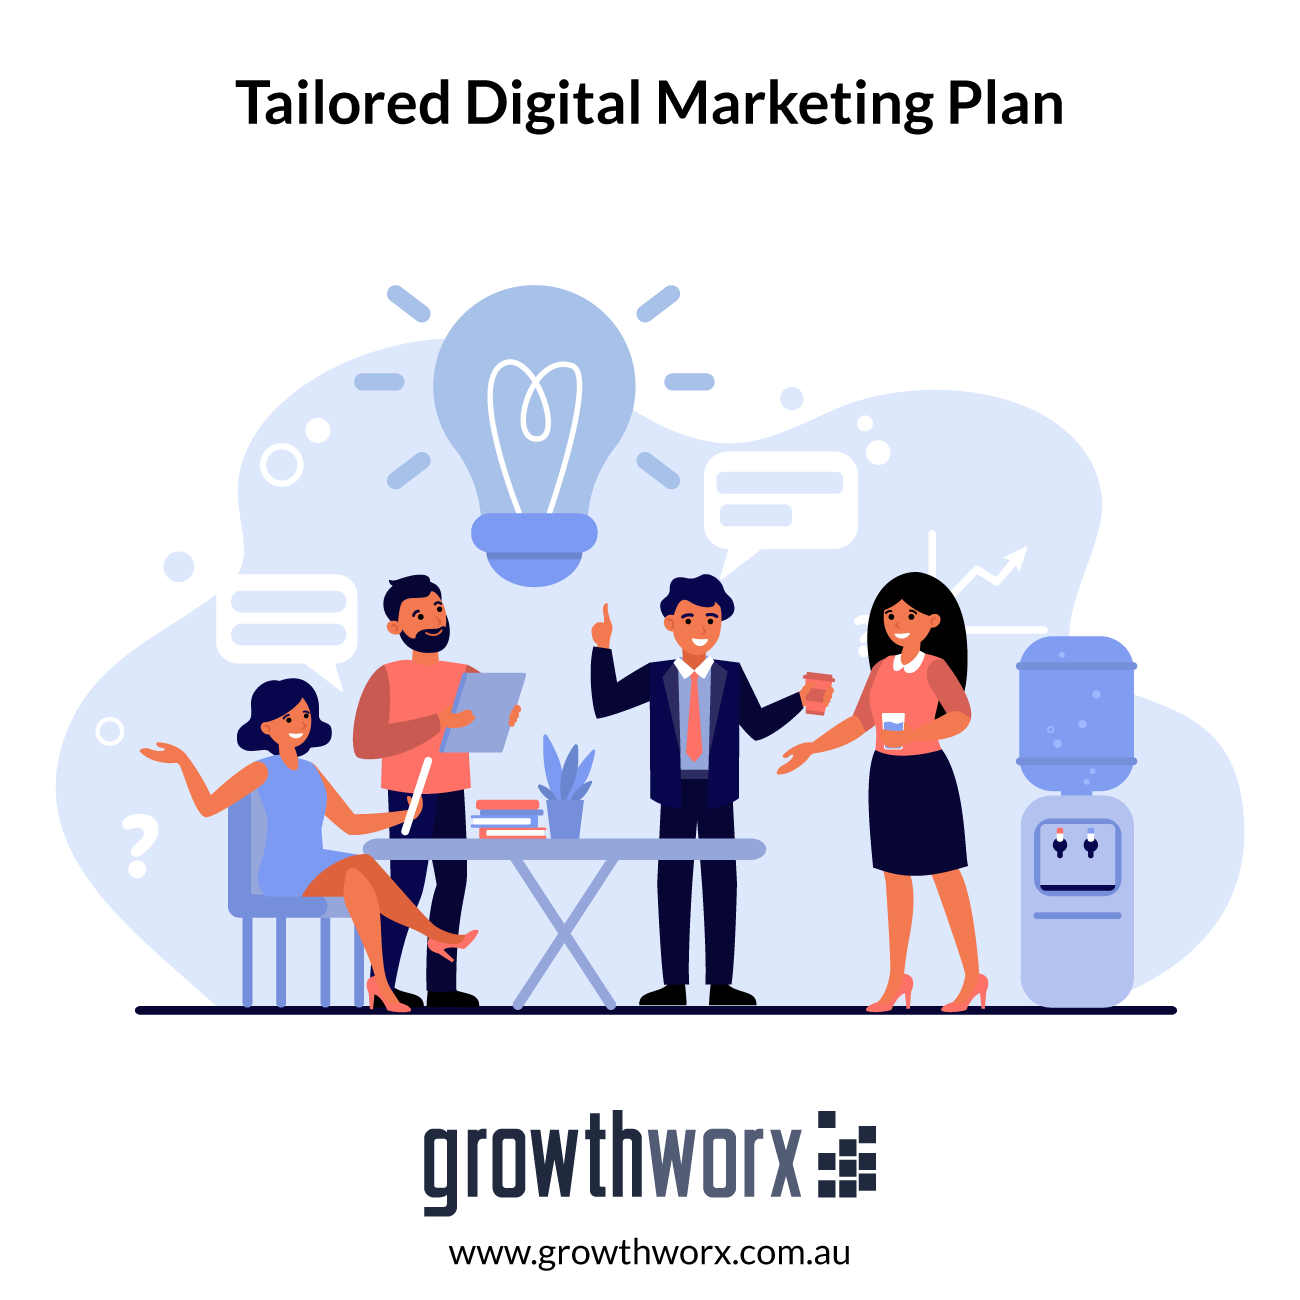 Create a tailored digital marketing plan with 3 months steps 1